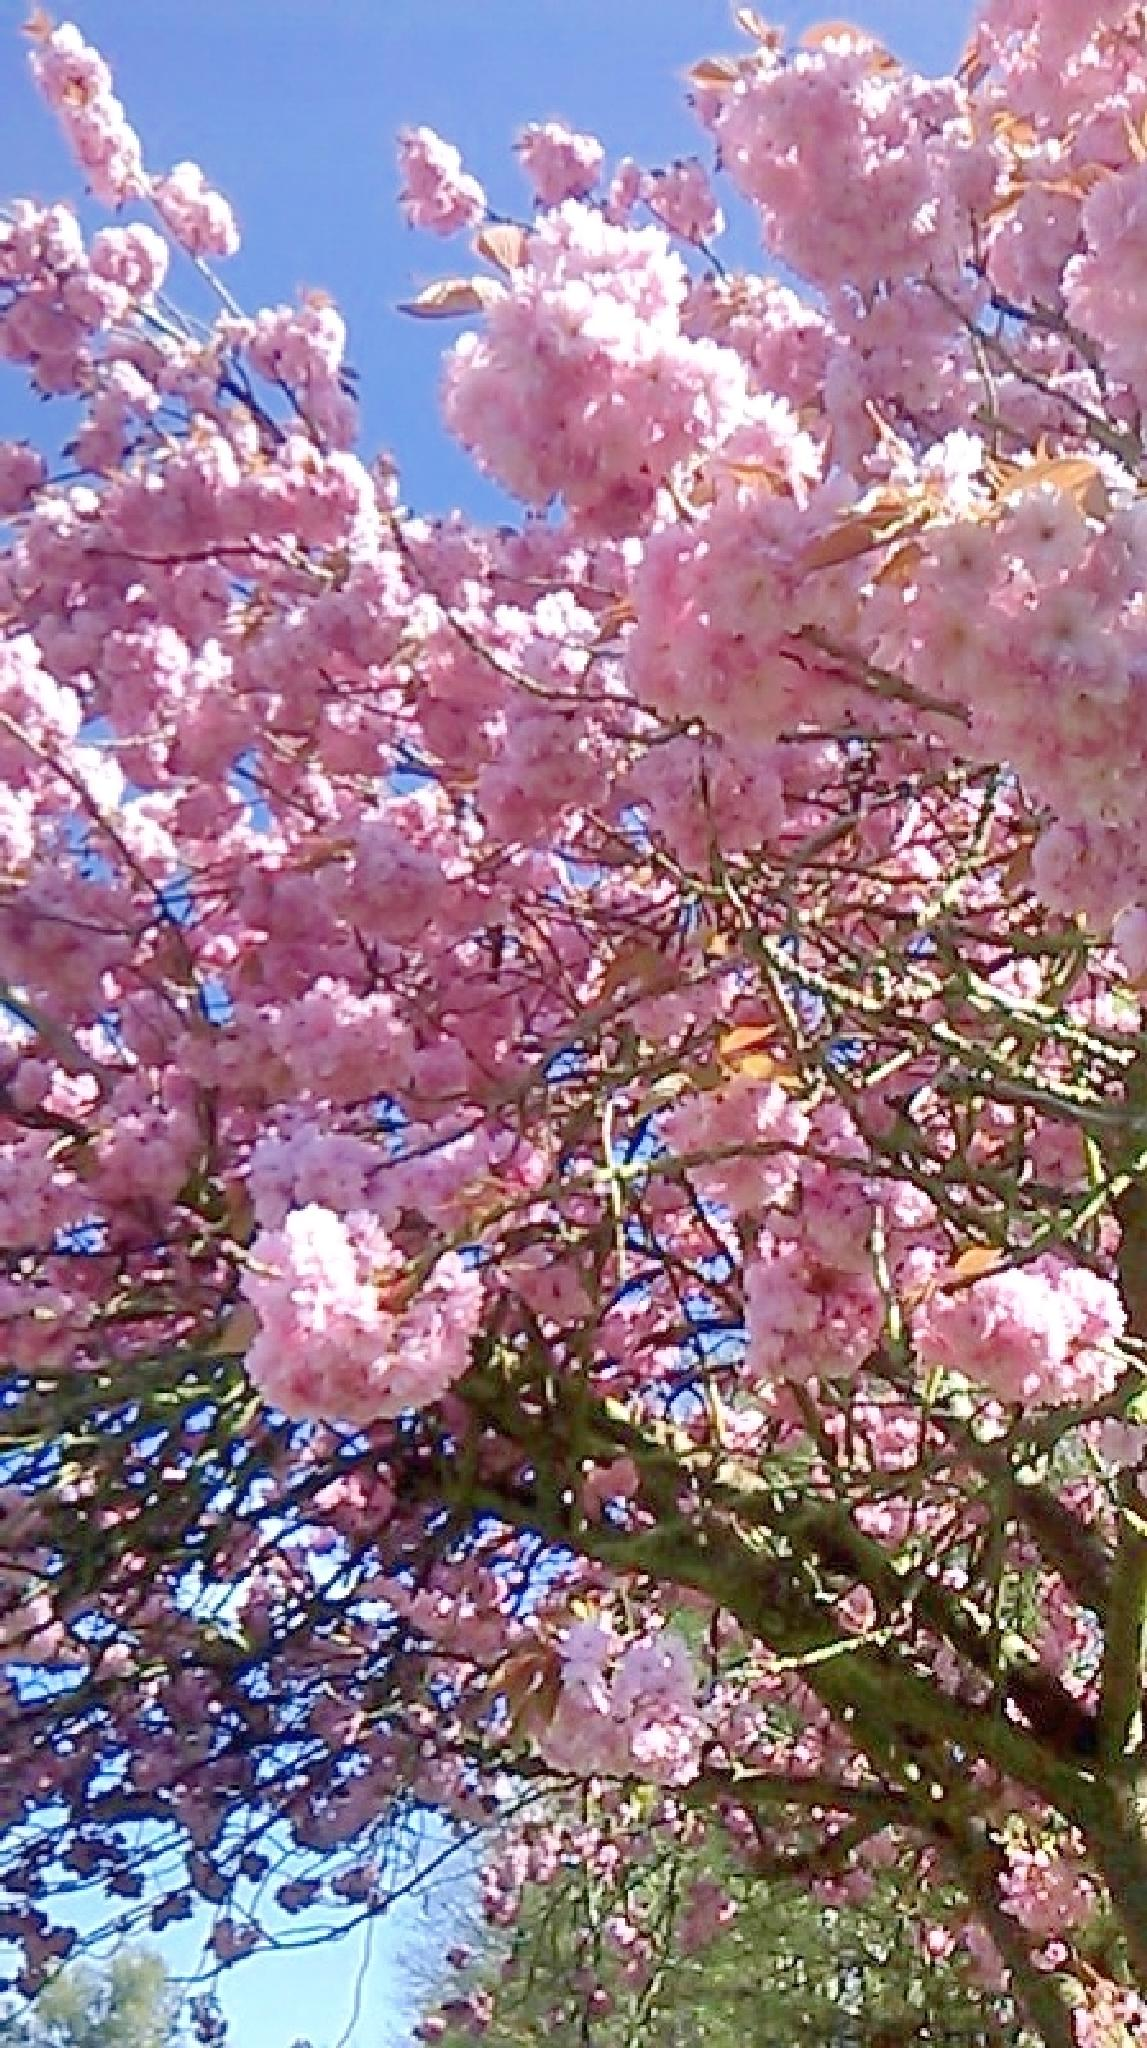 Blossoms by gemma smith